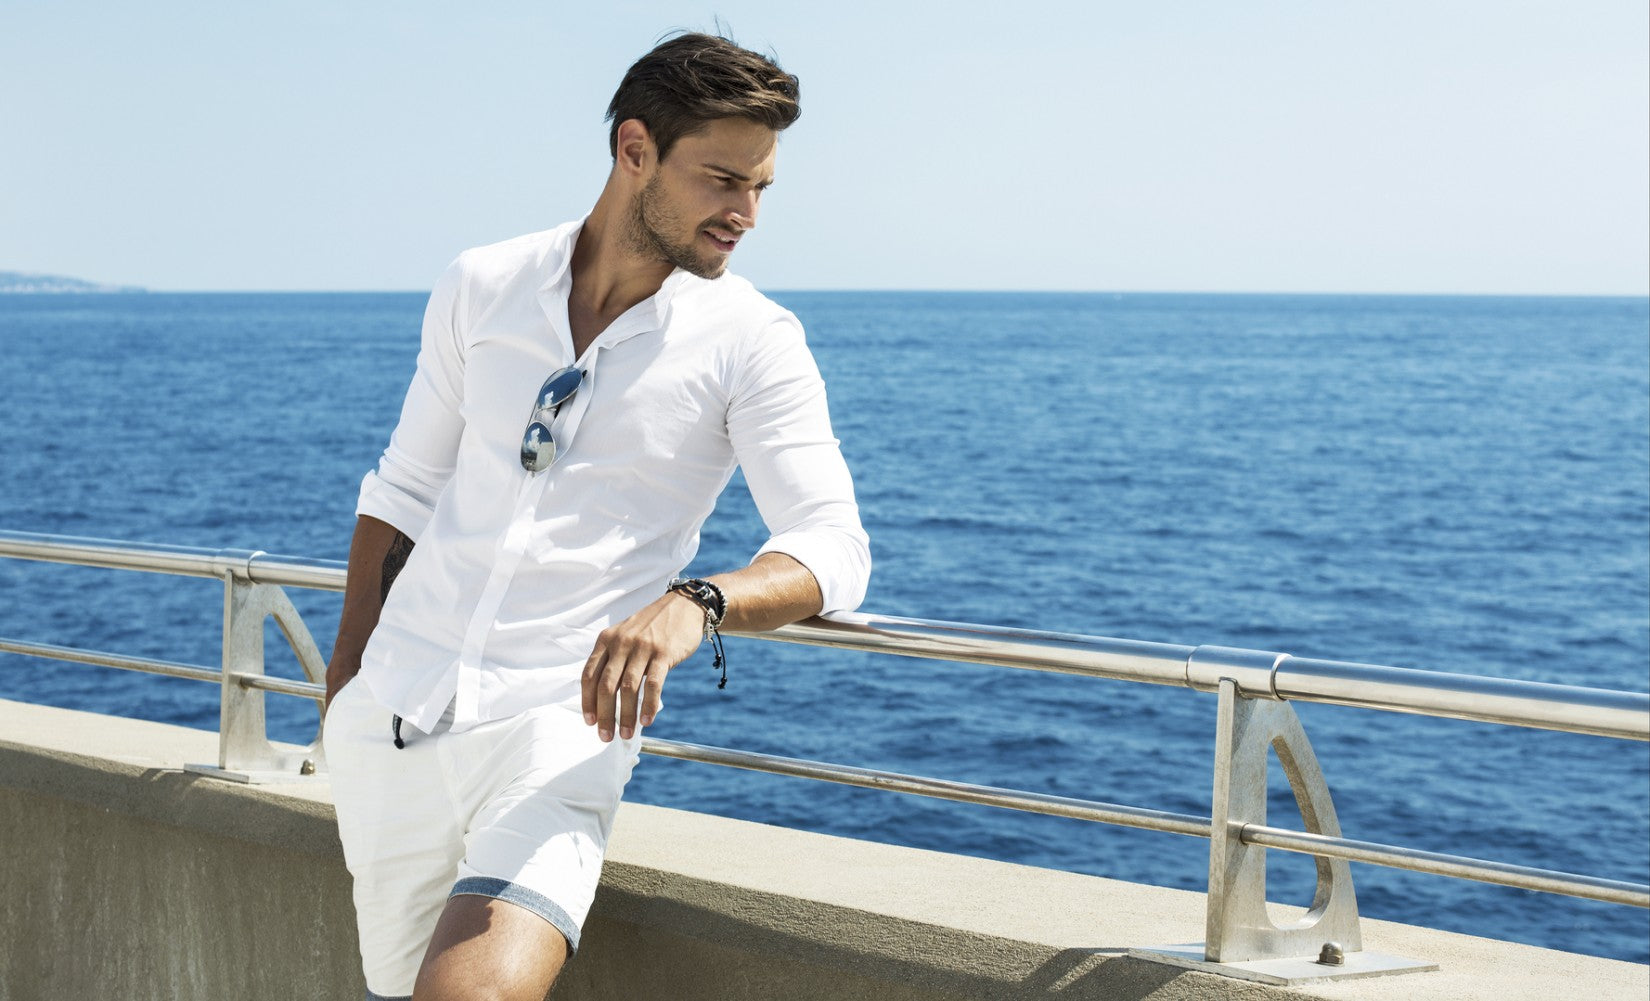 Know What Cruise Attire to Pack For a Cruise With These 7 Tips